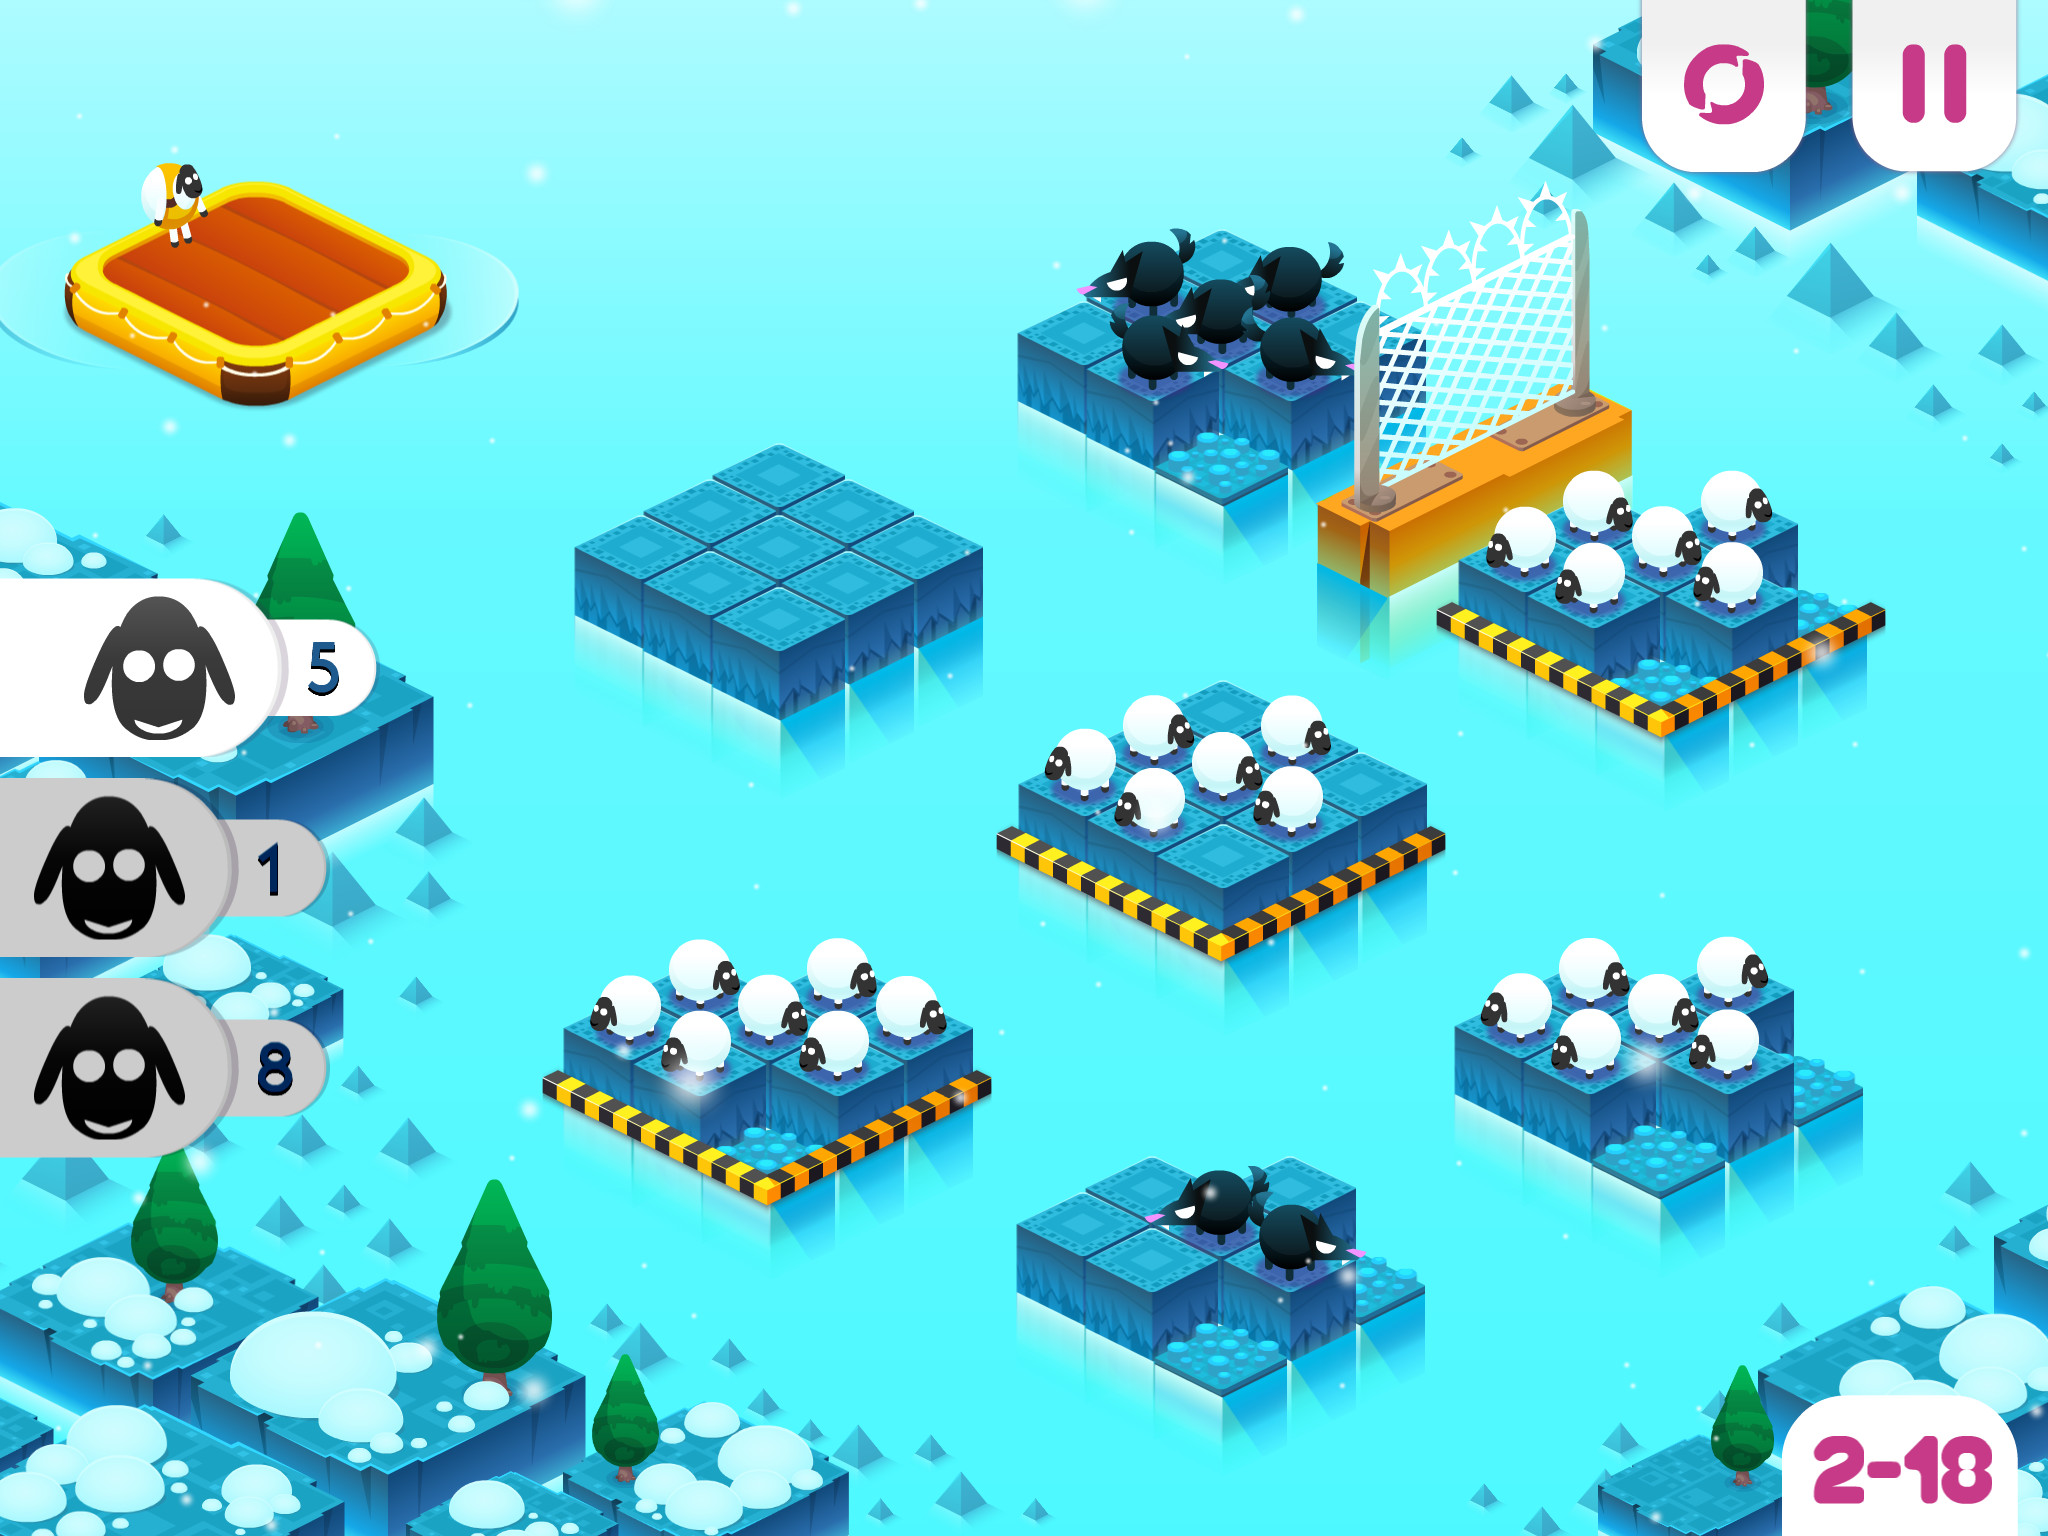 Divide By Sheep - A fresh and engaging puzzler